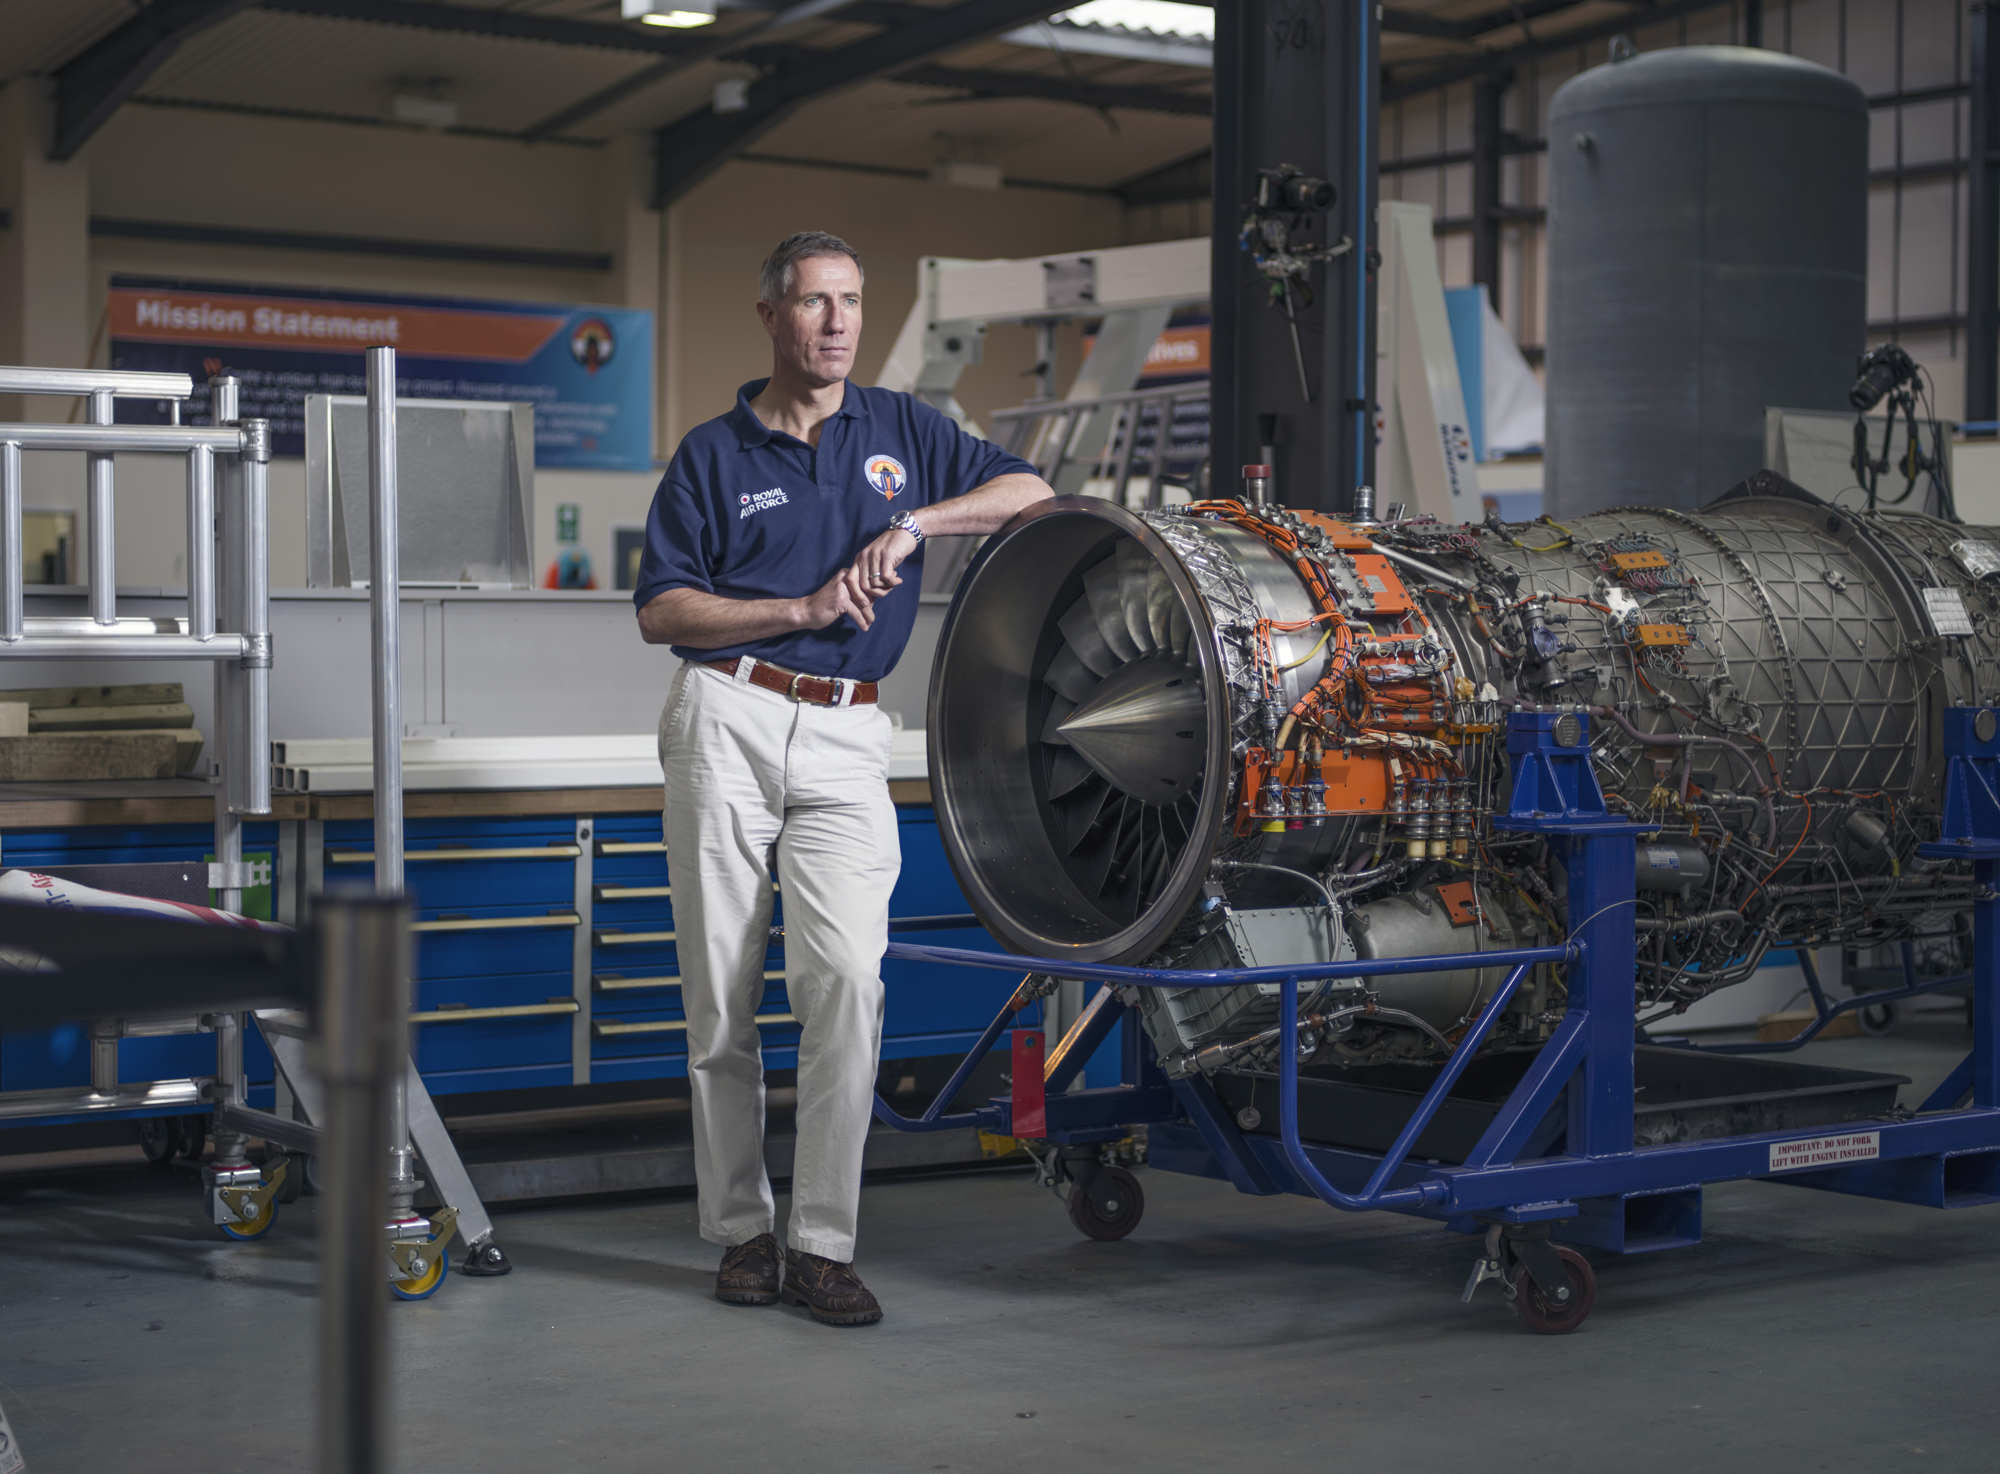 Bloodhound Project photography018.JPG